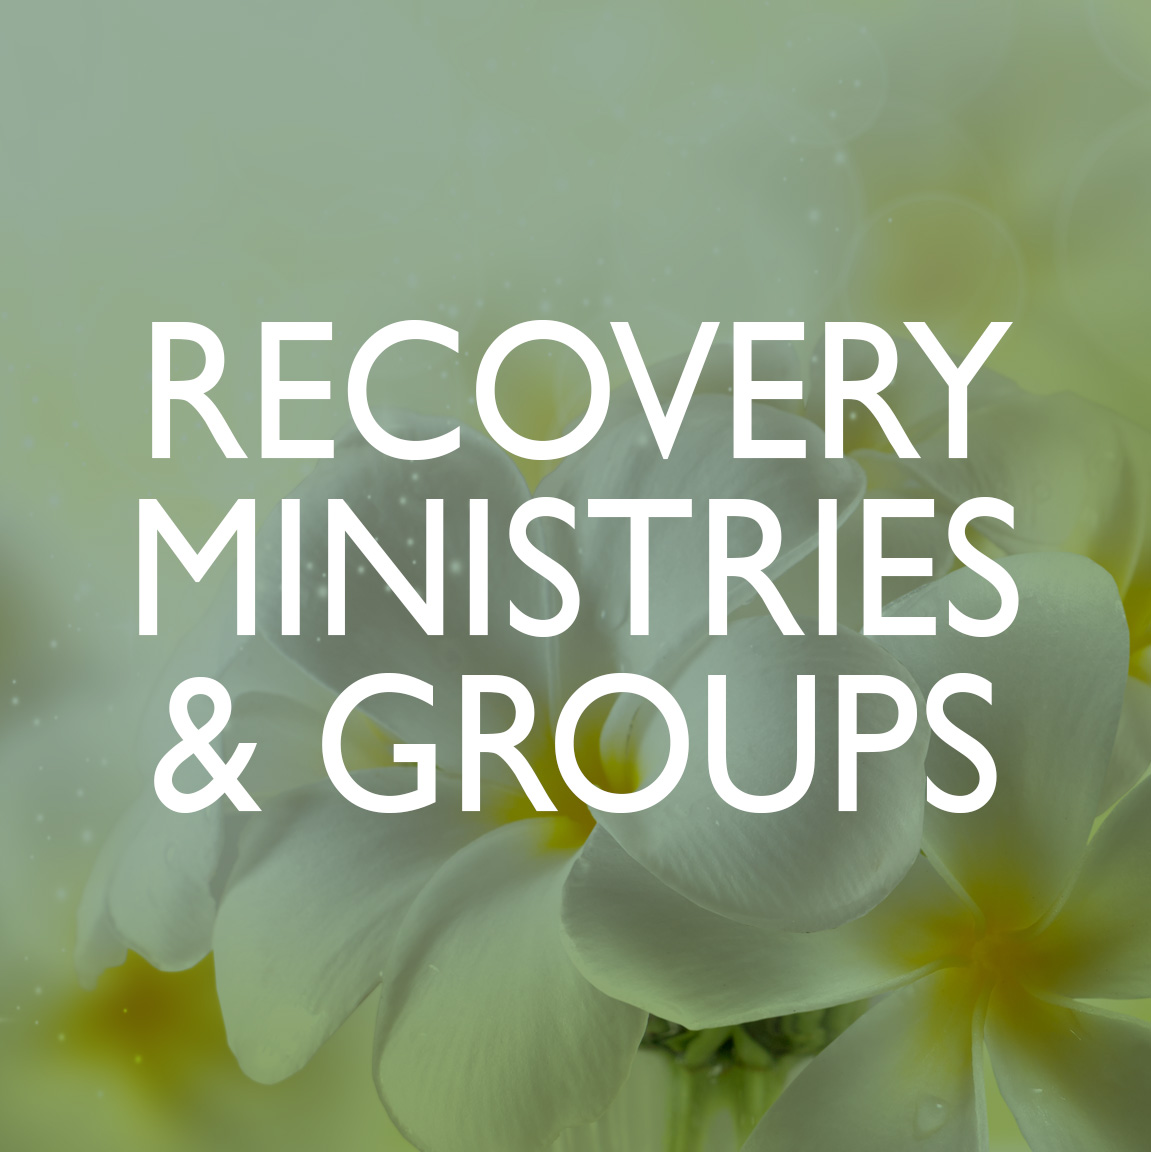 Square_Recovery ministries and groups.jpg